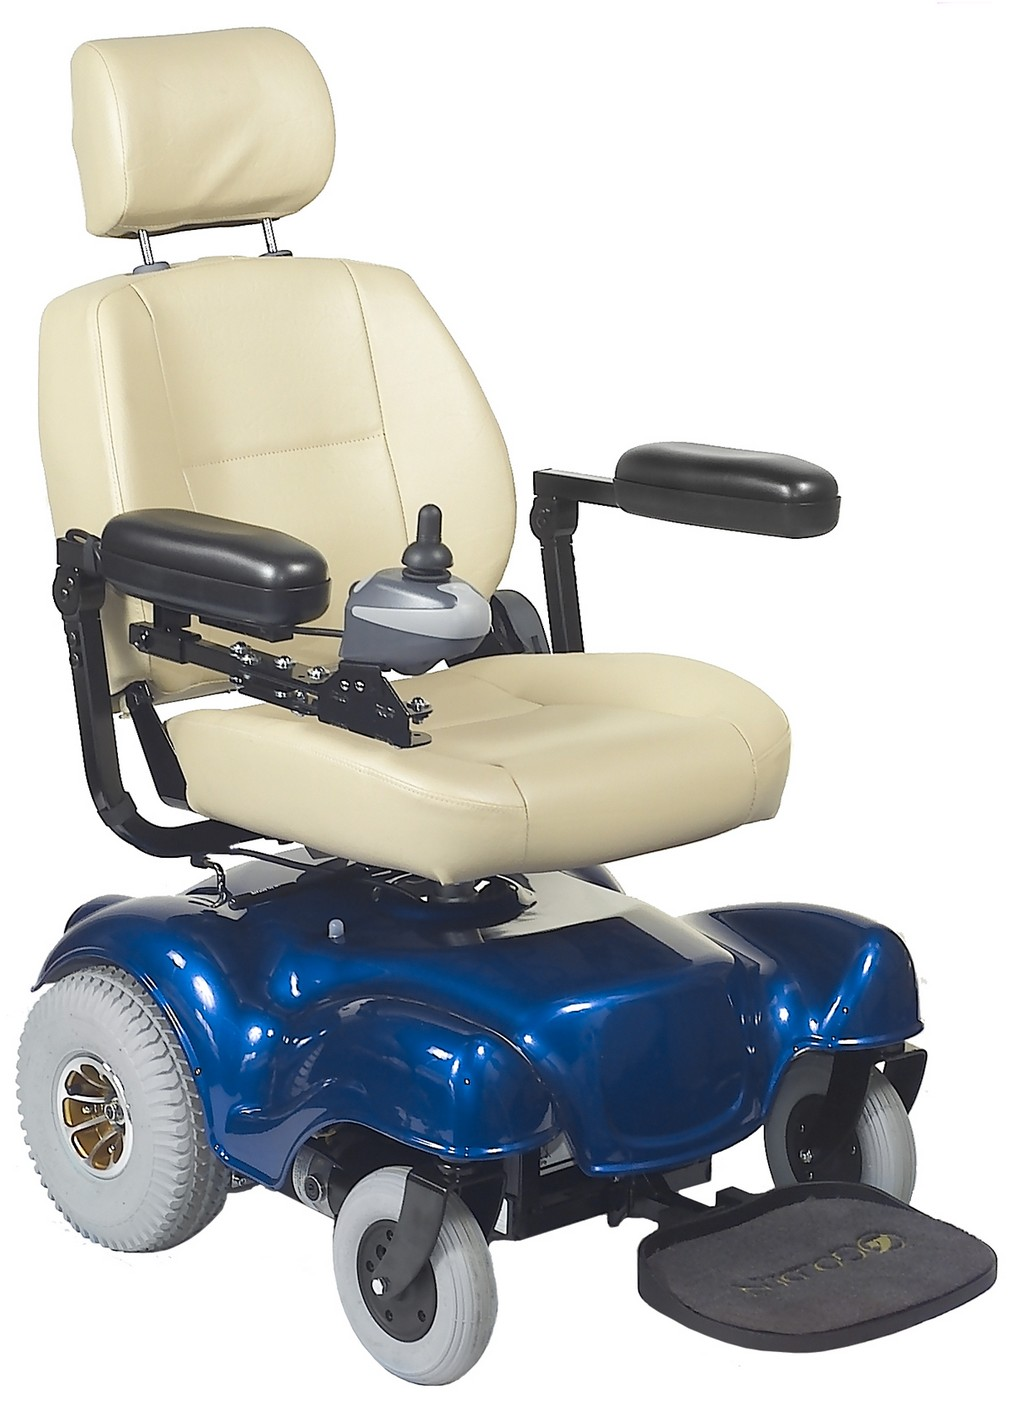 Pronto Power Chair Wheelchair Assistance Power Wheelchair Accessories